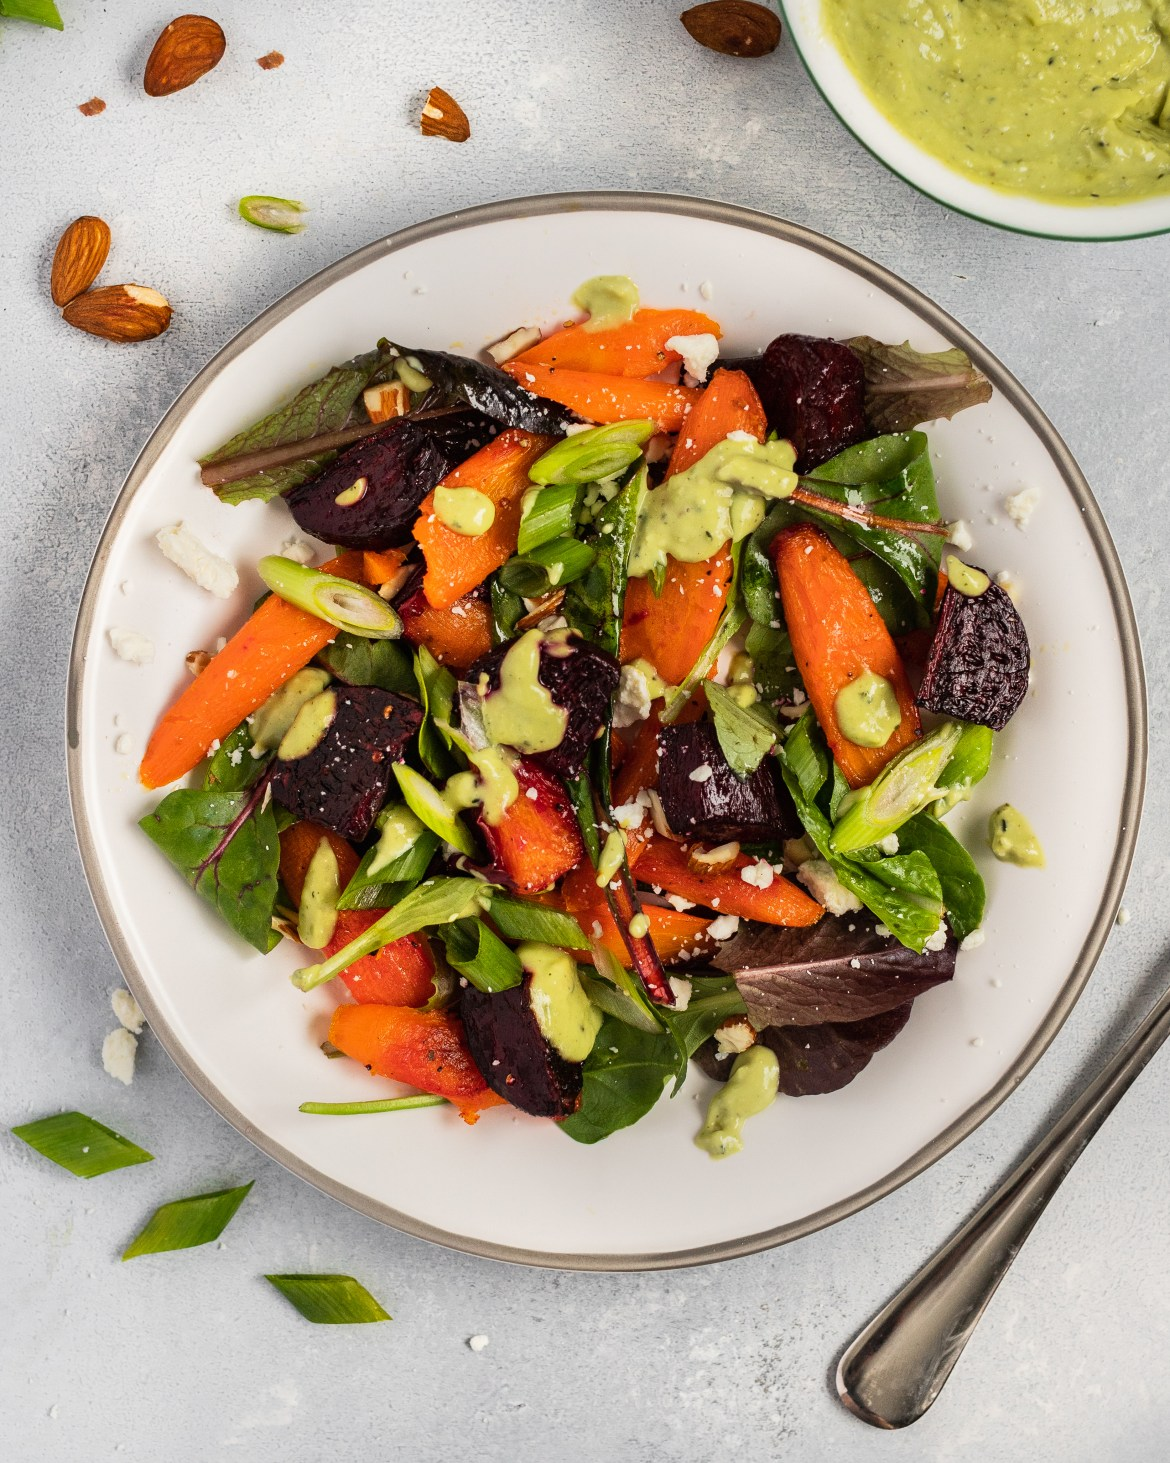 Healthy Winter Salad with Avocado Dressing and Almonds